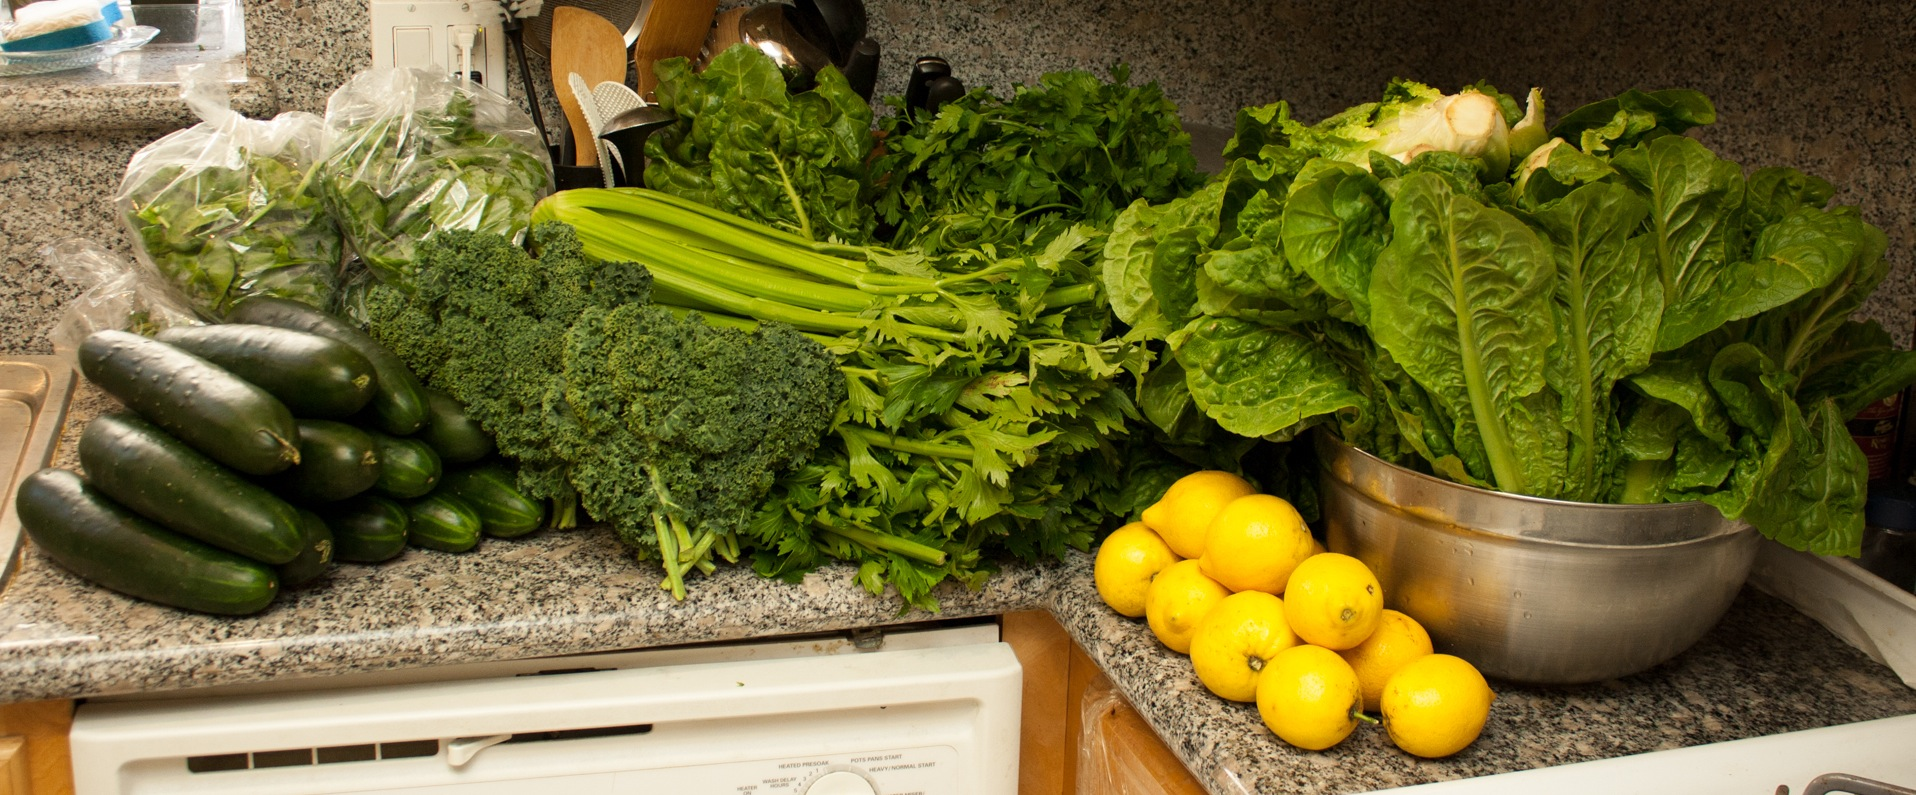 farmers market green juice veggies